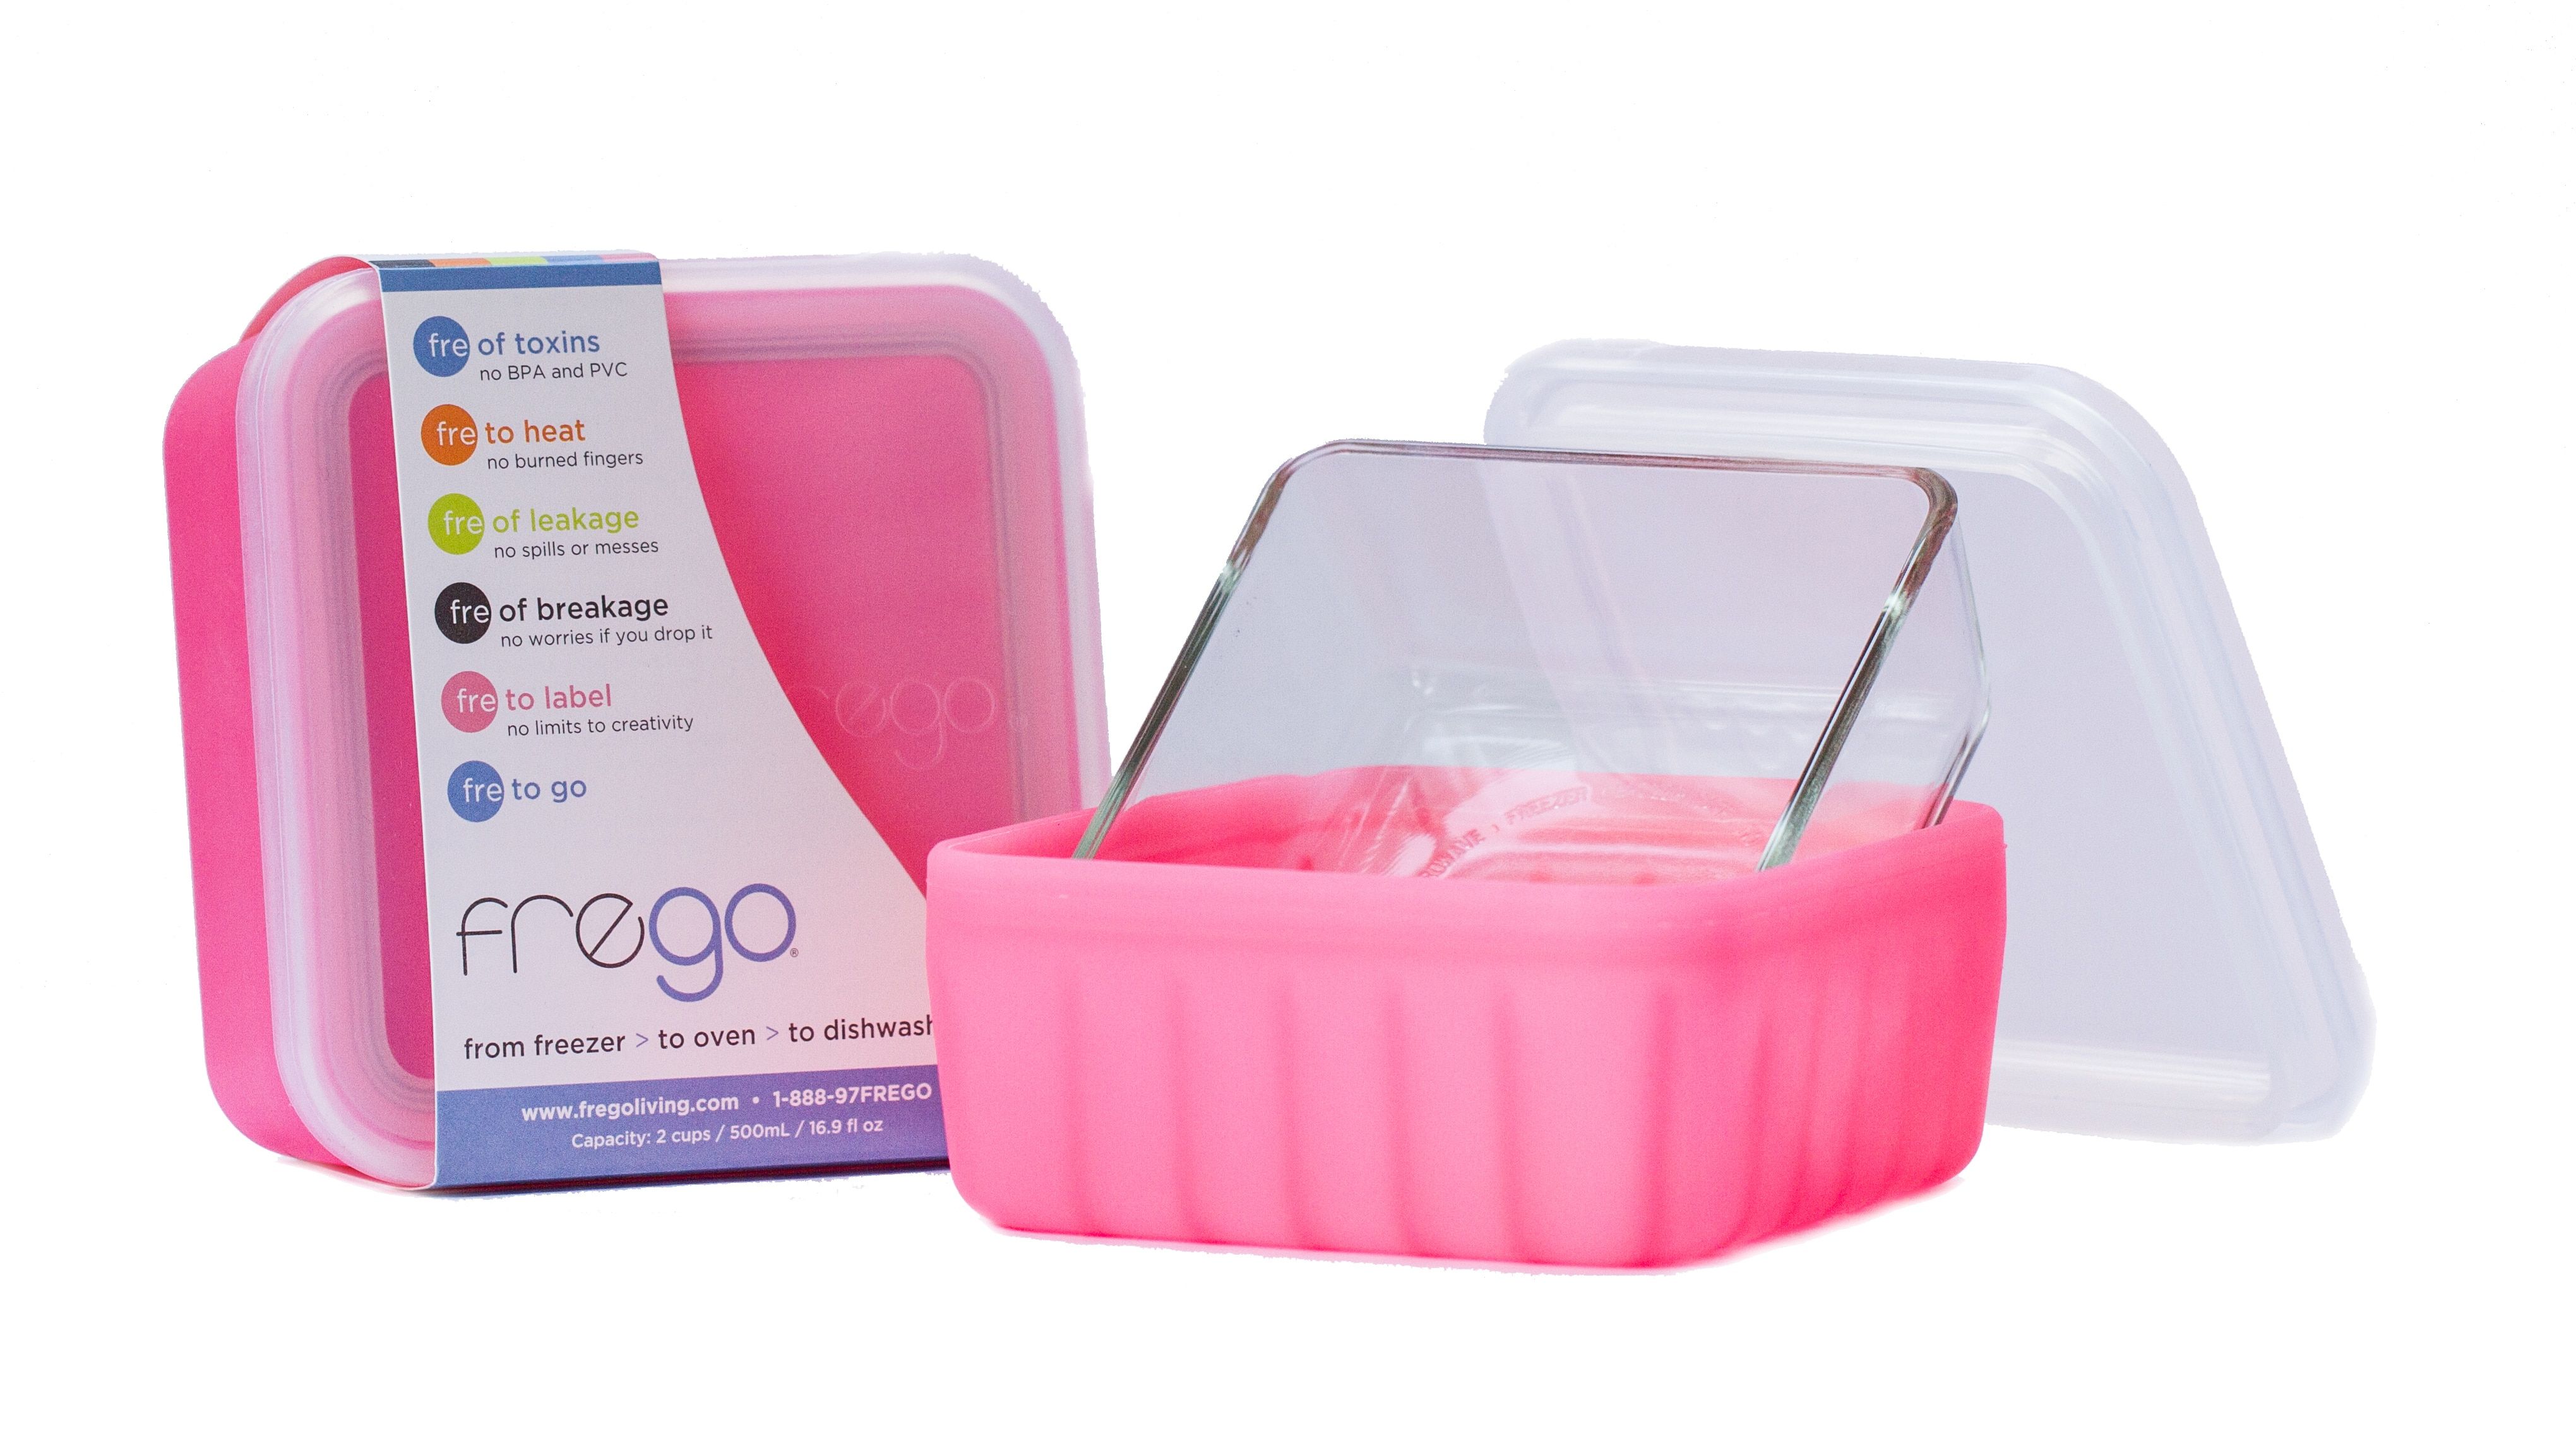 ... Image 654936_ALTMORE2.jpg  Product 654-936 / Price $24.95  Frego Food Storage ...  sc 1 st  The Shopping Channel & Buy Frego Food Storage Container - 2-cup - Kitchen - Kitchen ...